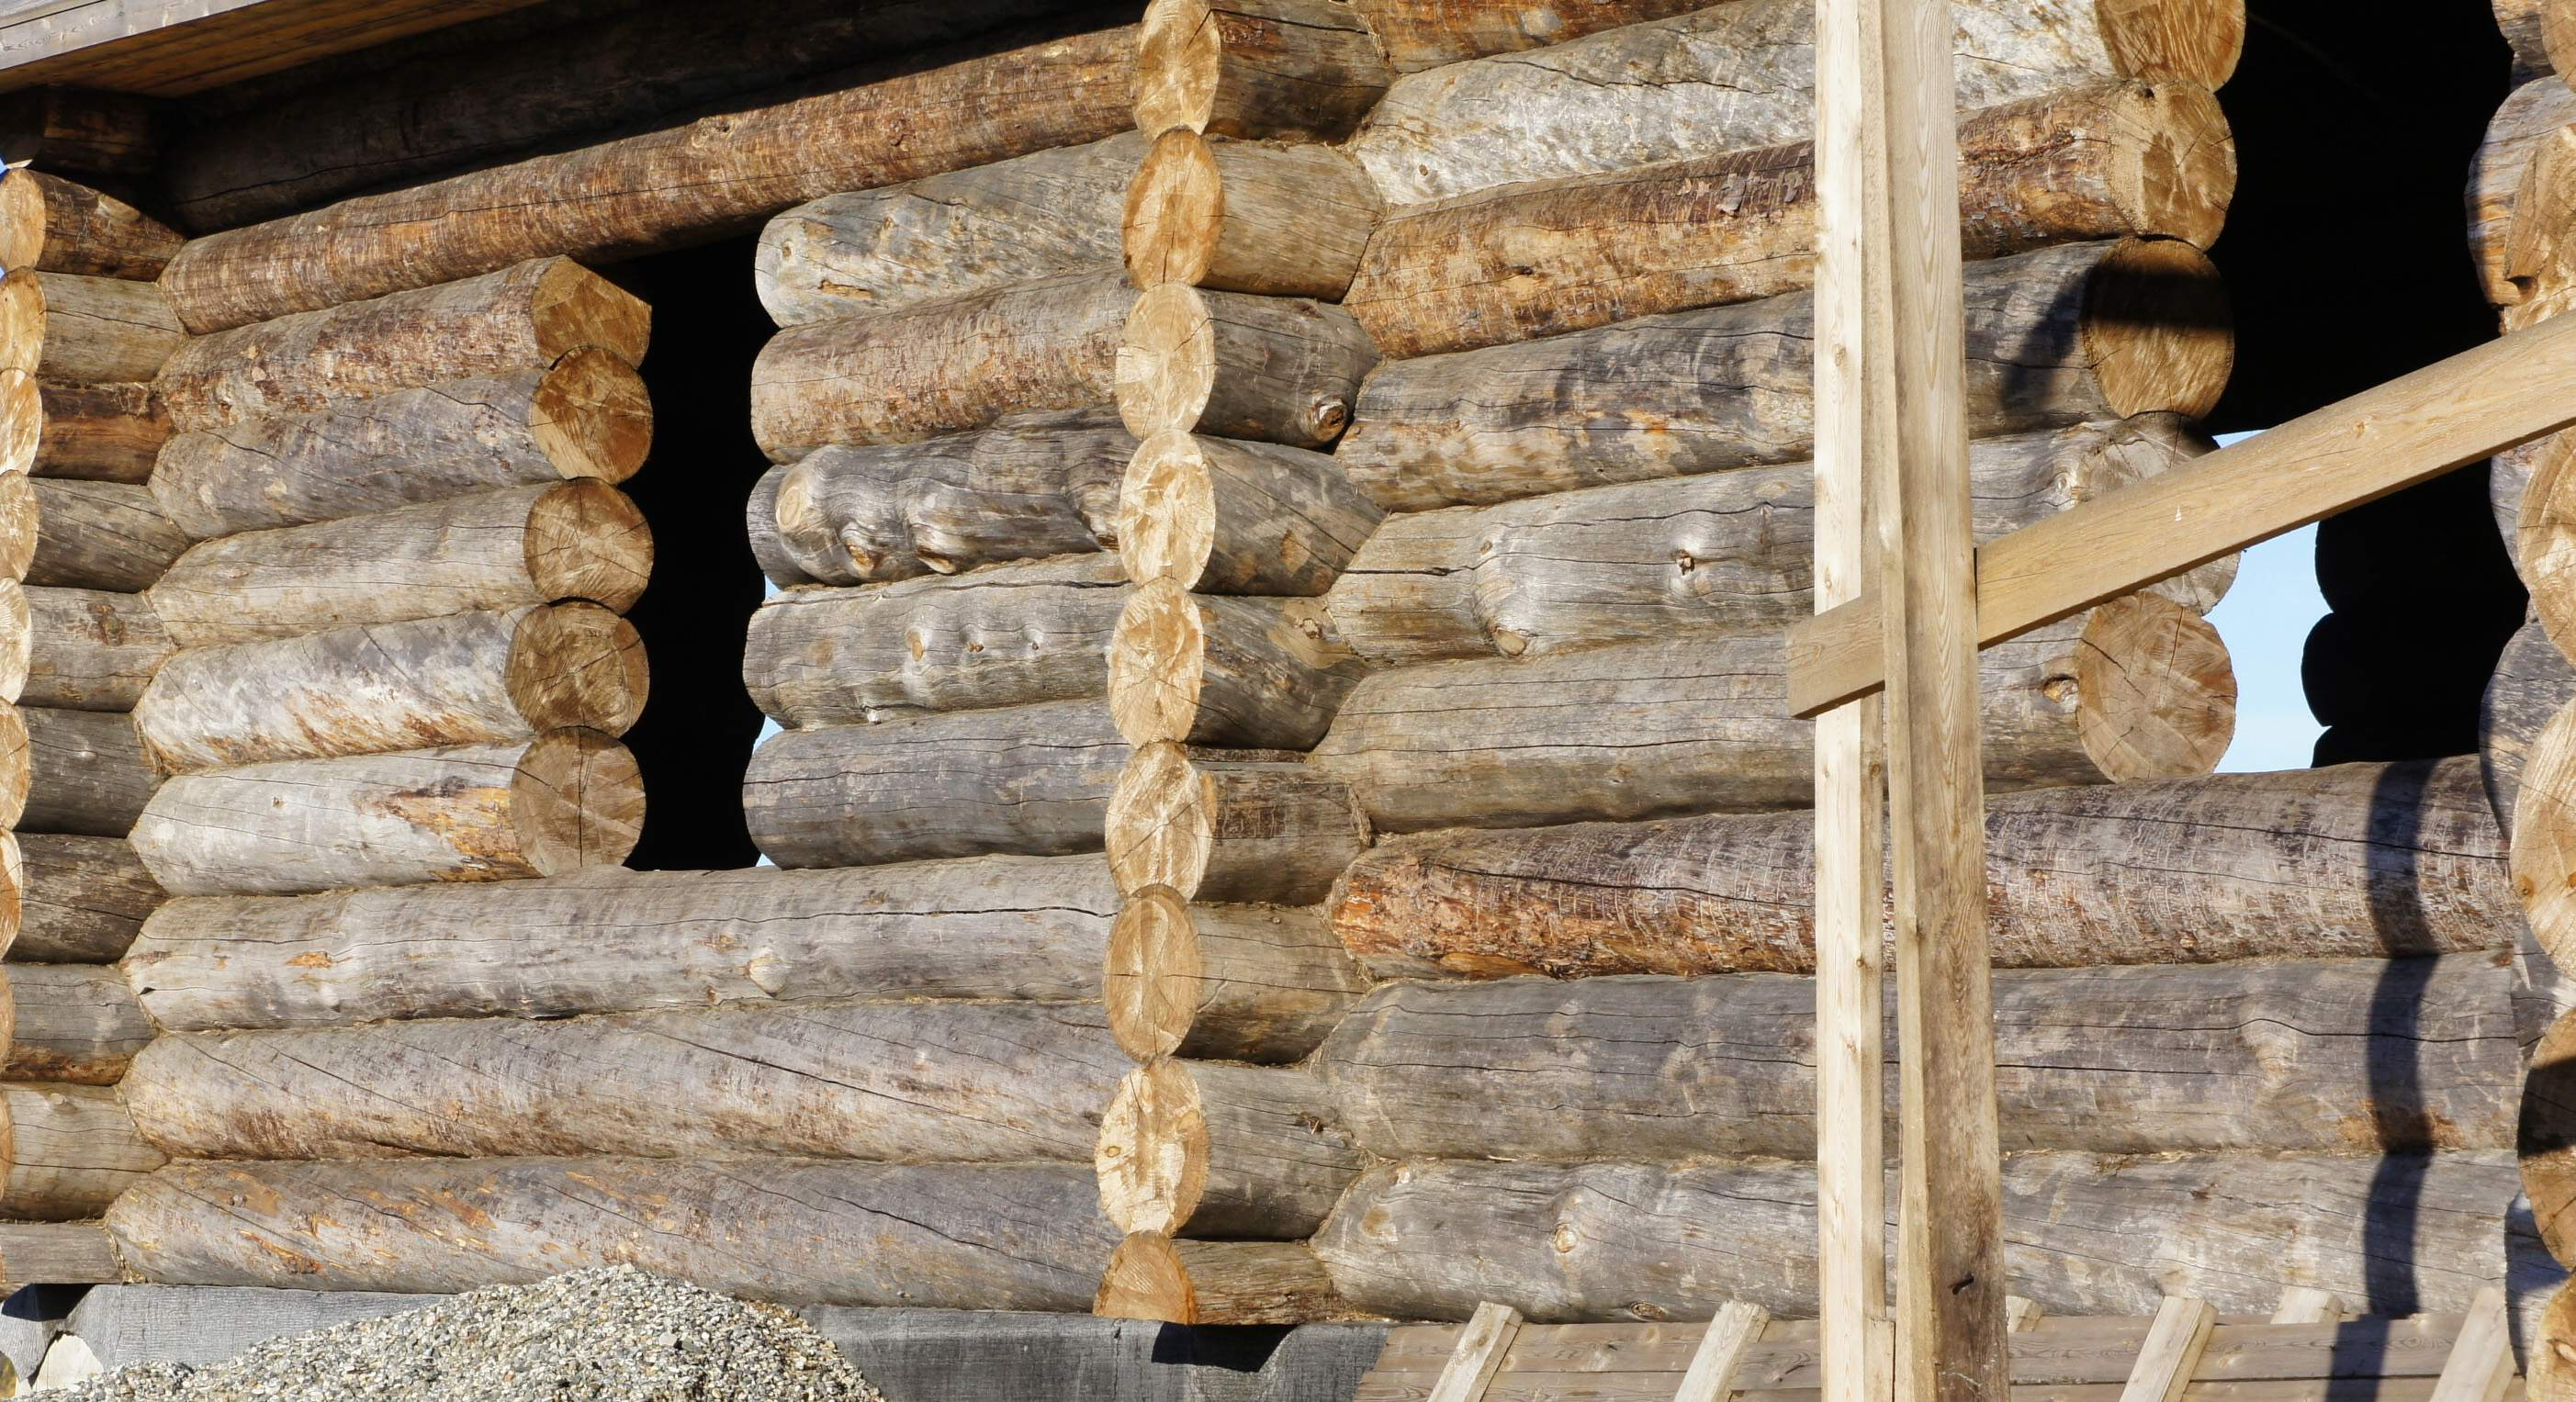 Logs are fitted tightly together and the remaining gaps are filled with grass or moss.